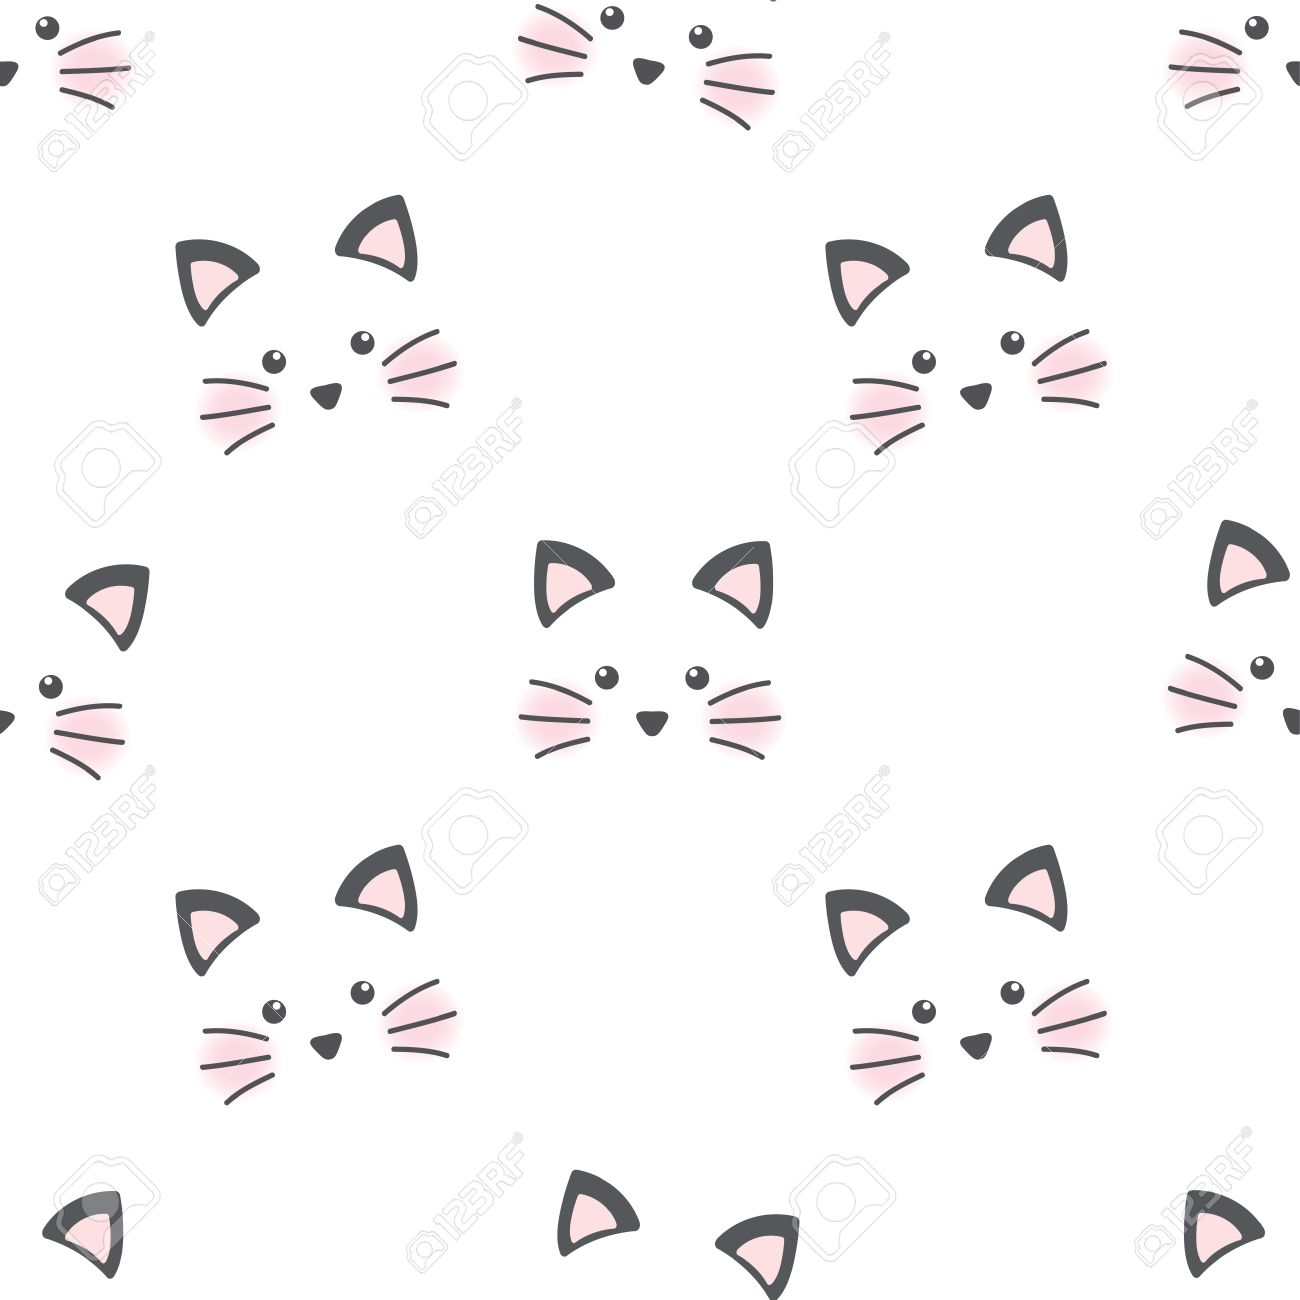 Cute Cat Face Seamless Wallpaper Royalty Free Cliparts Vectors